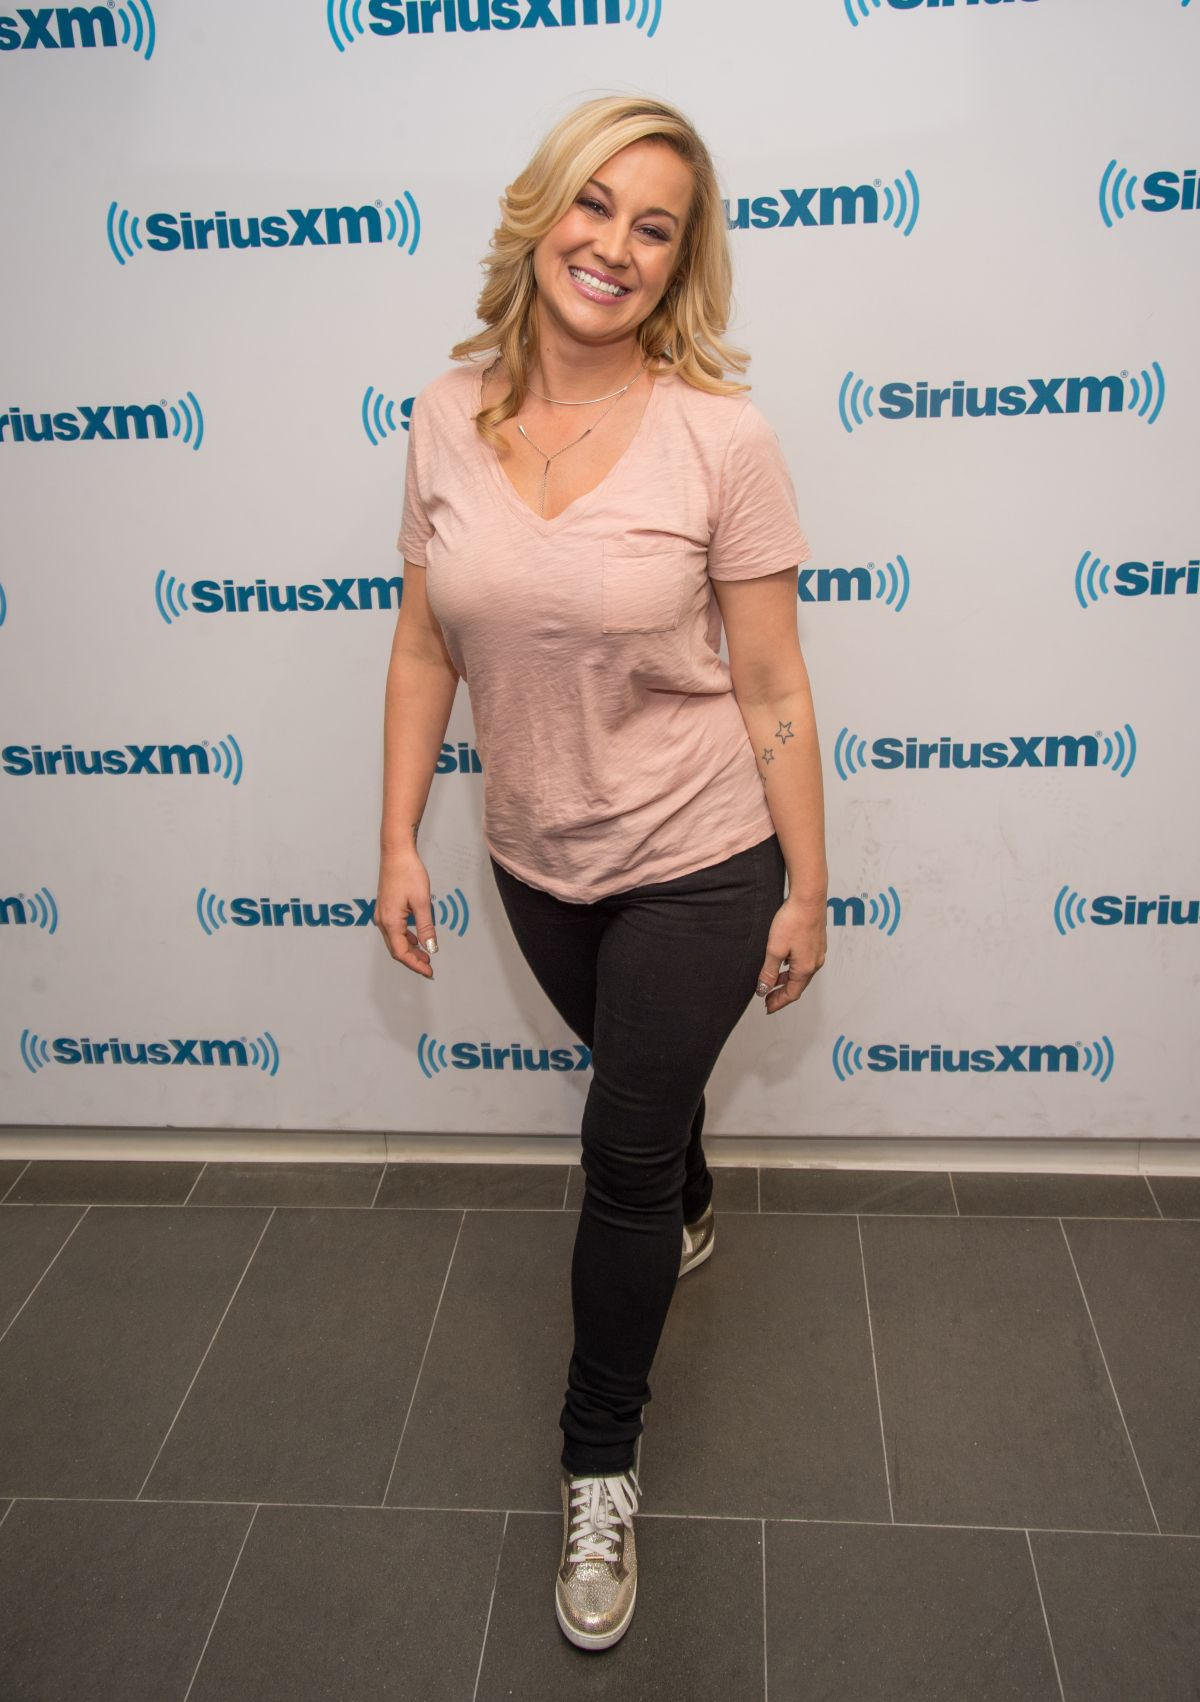 KELLIE PICKLER at SiriusXM Studios in New York 08/23/2016